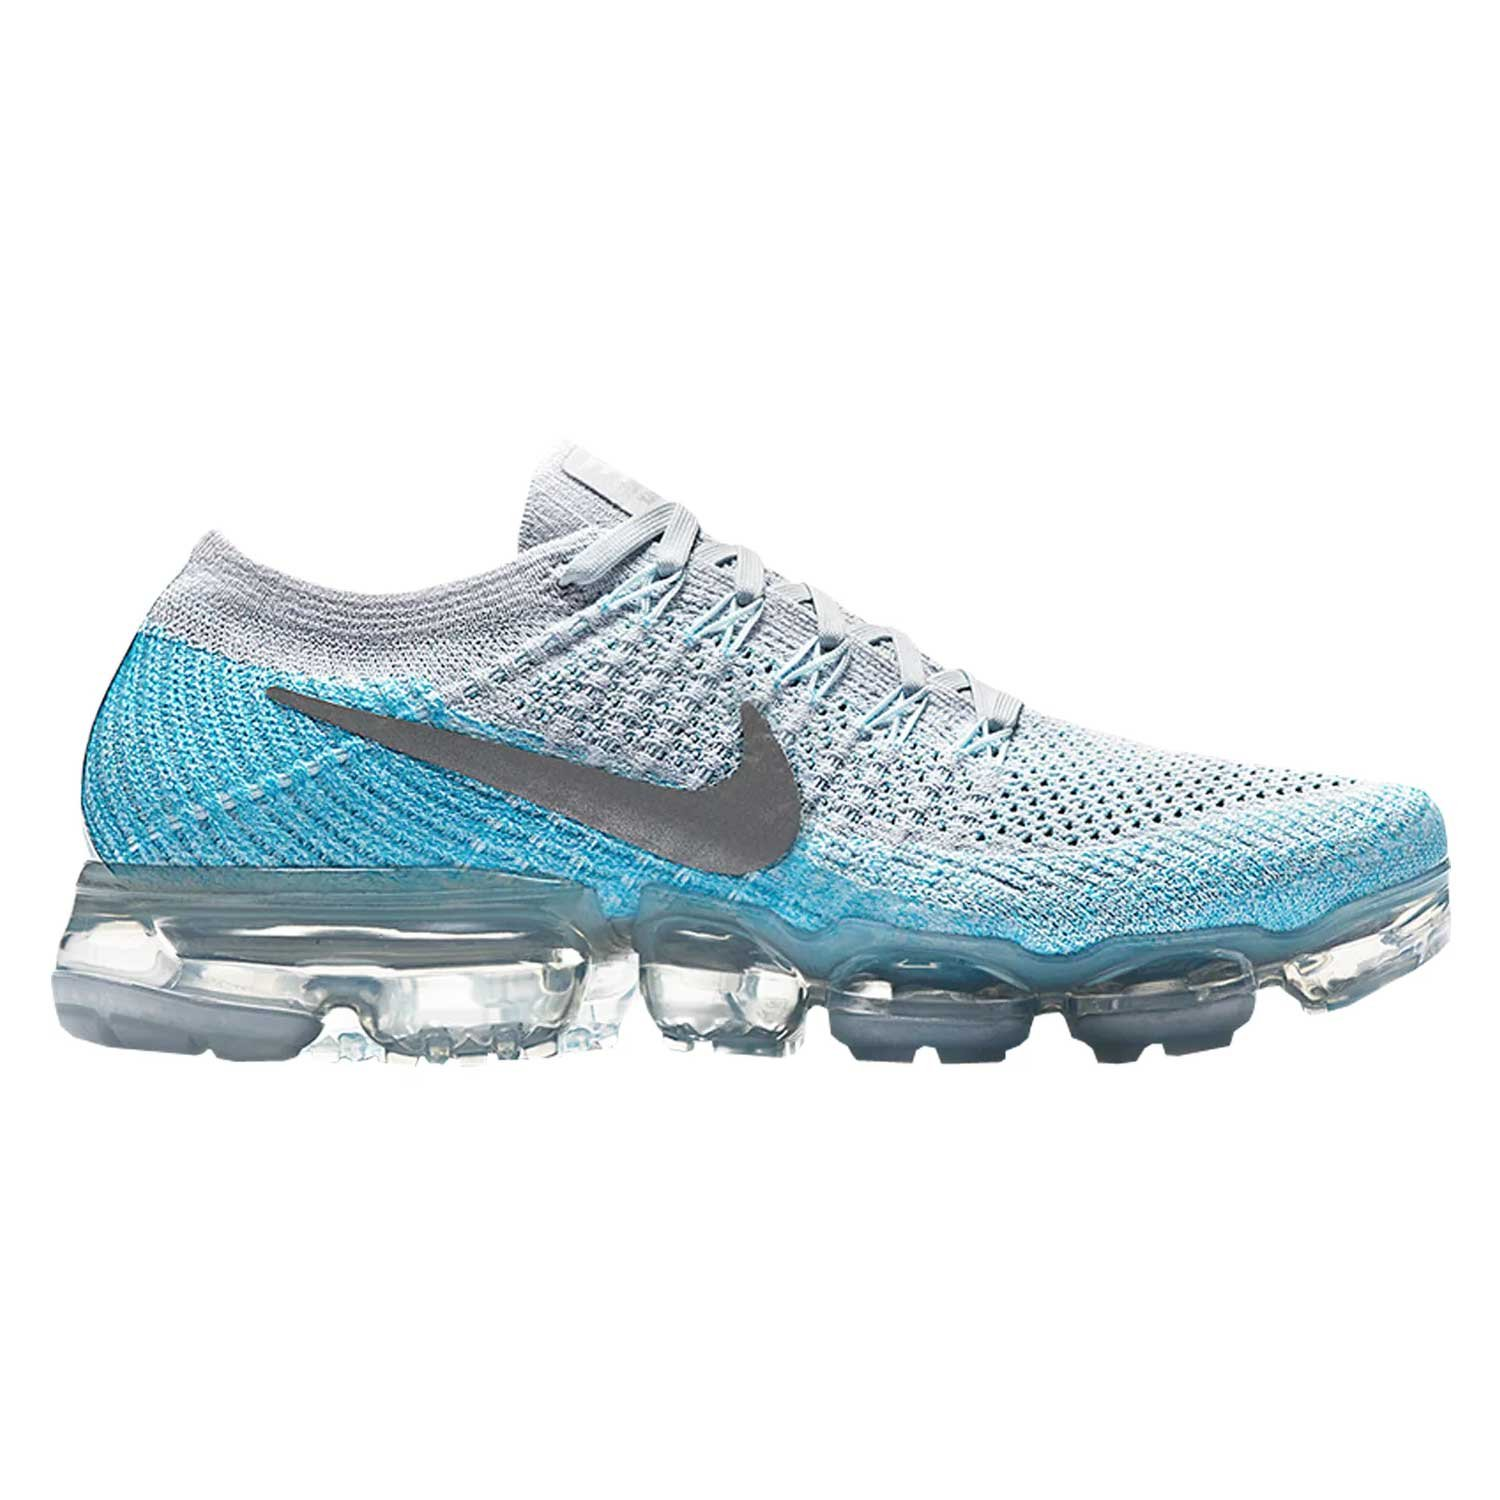 Nike WMNS Air Vapormax Flyknit Ice Flash 849557 014 PlatinumBlue Women's Running Shoes